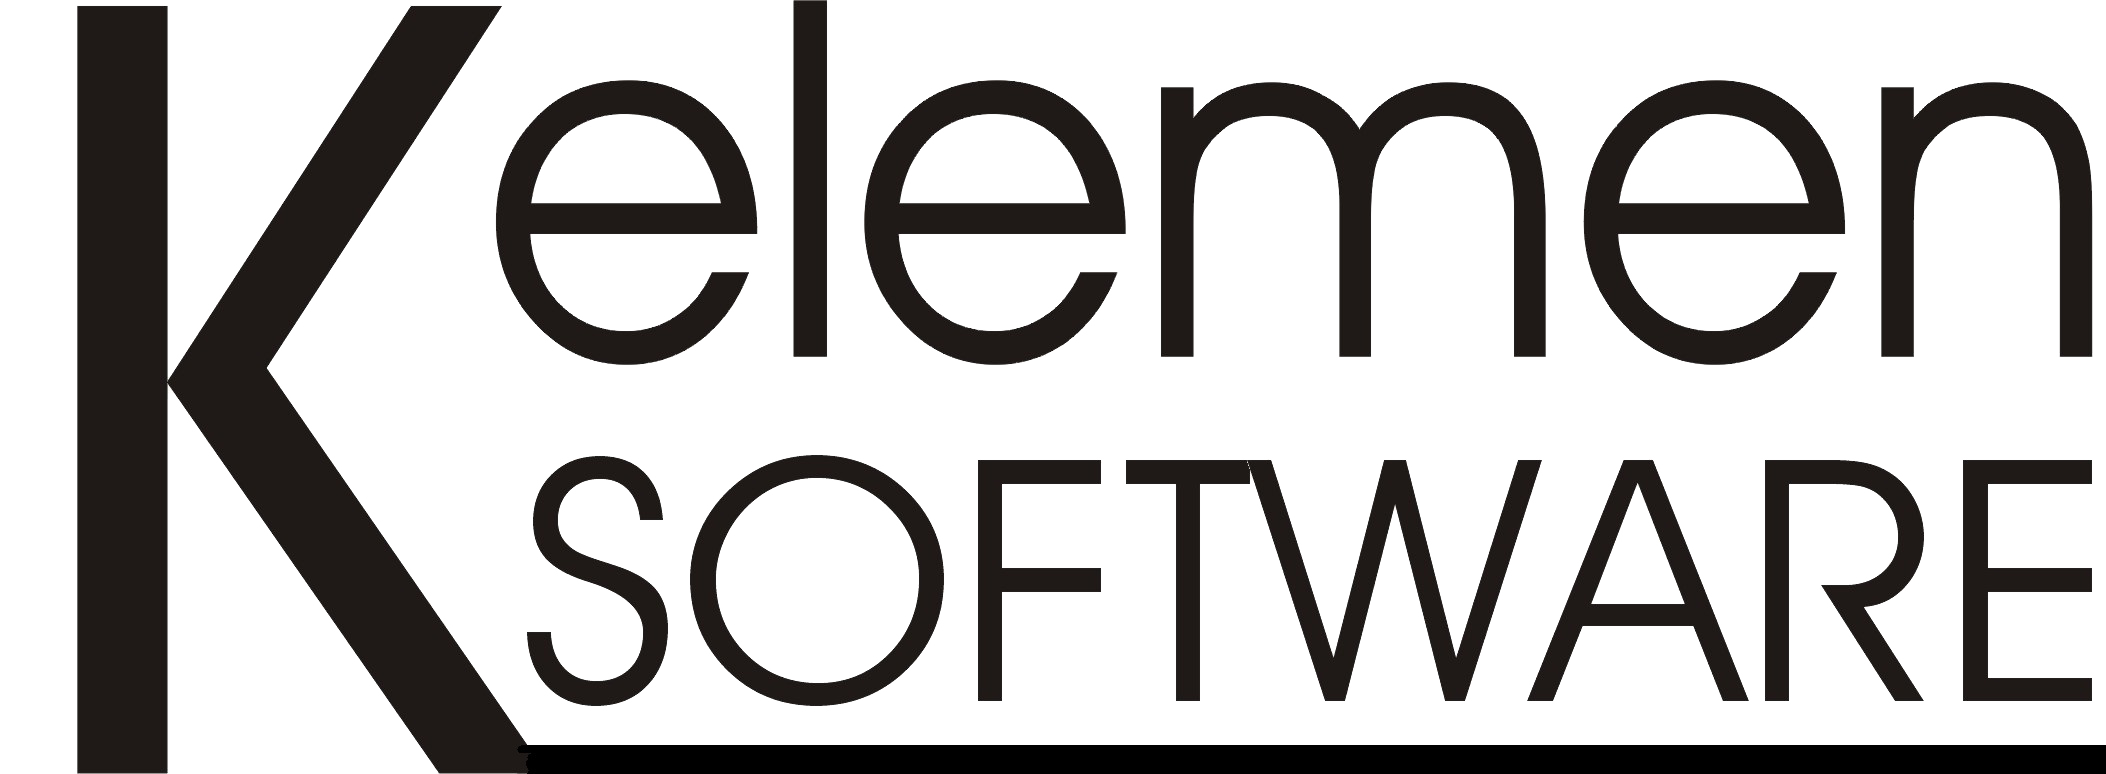 Kelemen software logo